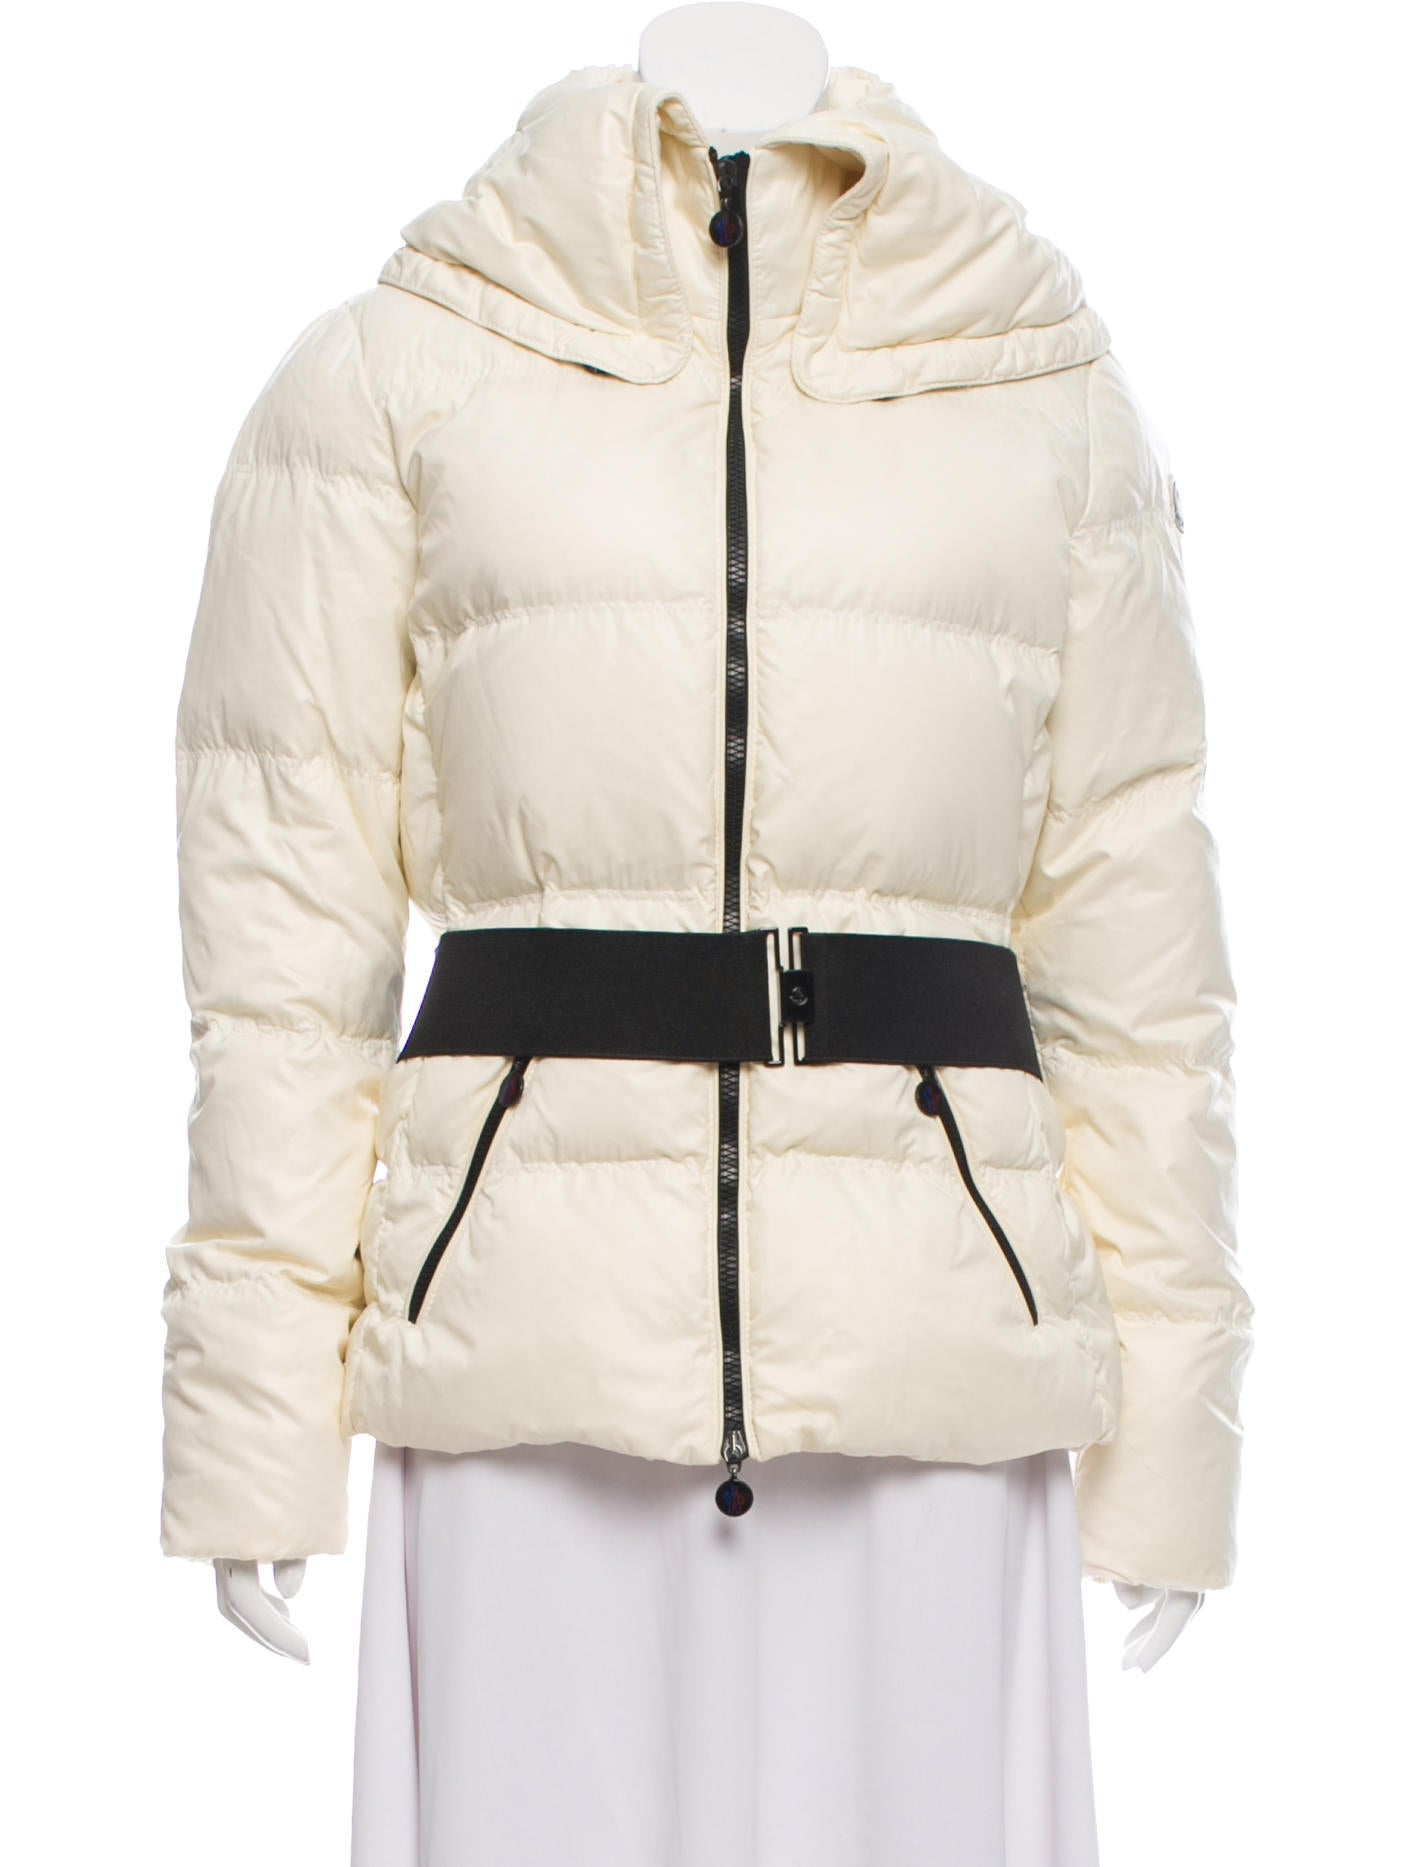 365df50a517d Moncler Aliso Puffer Jacket - Clothing - MOC34270